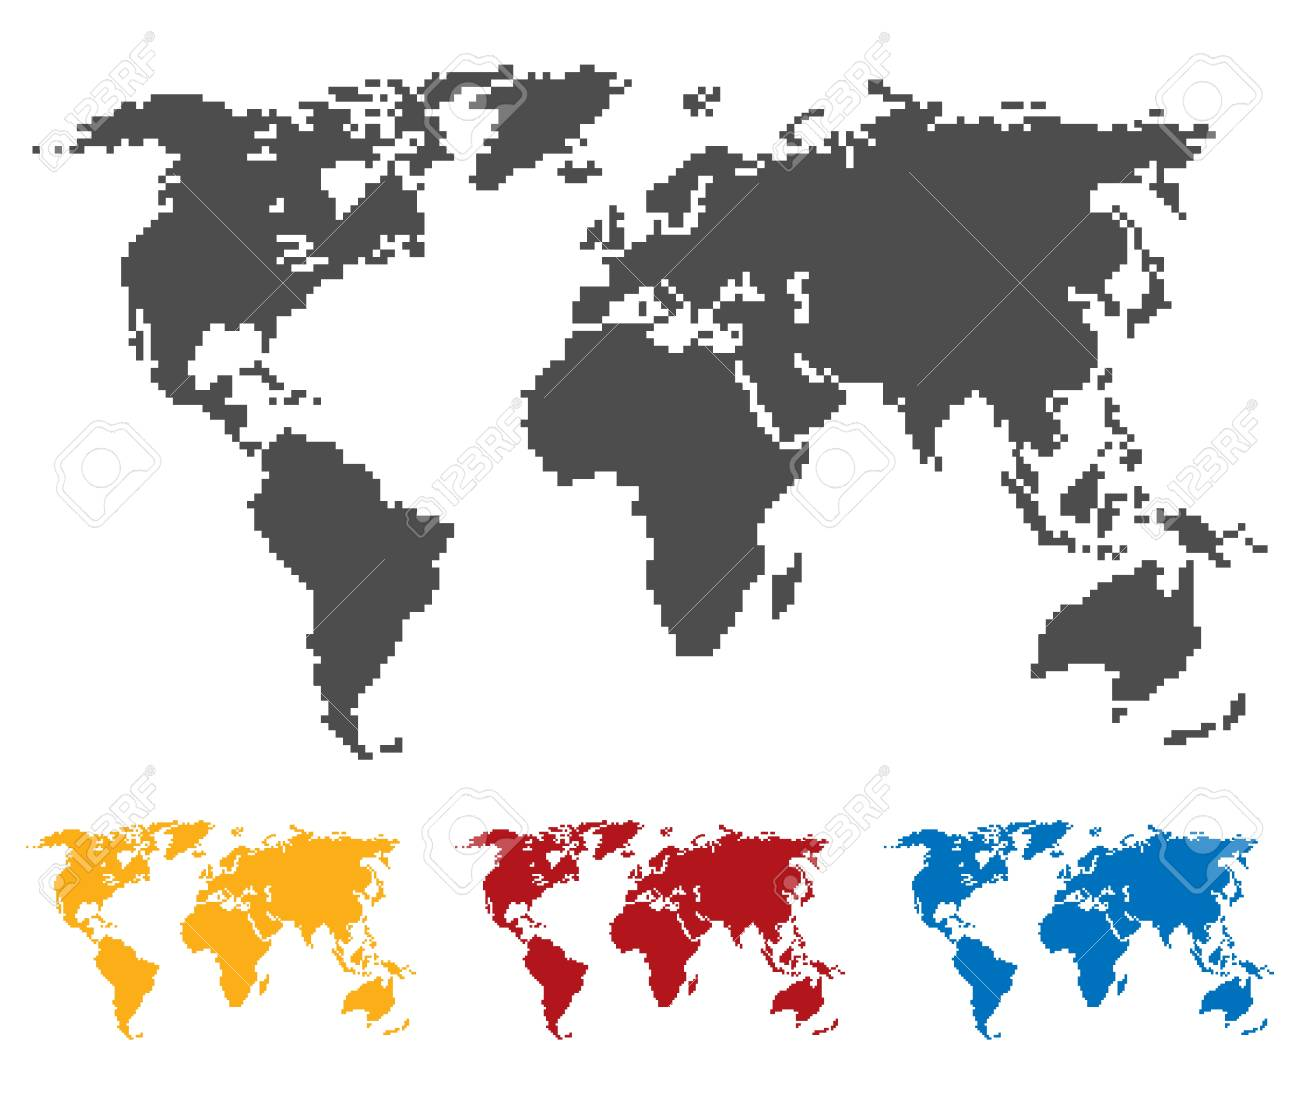 World map black yellow red blue color saddle or pixel structure foto de archivo world map black yellow red blue color saddle or pixel structure globe icon flat vector illustration in black on white background gumiabroncs Images